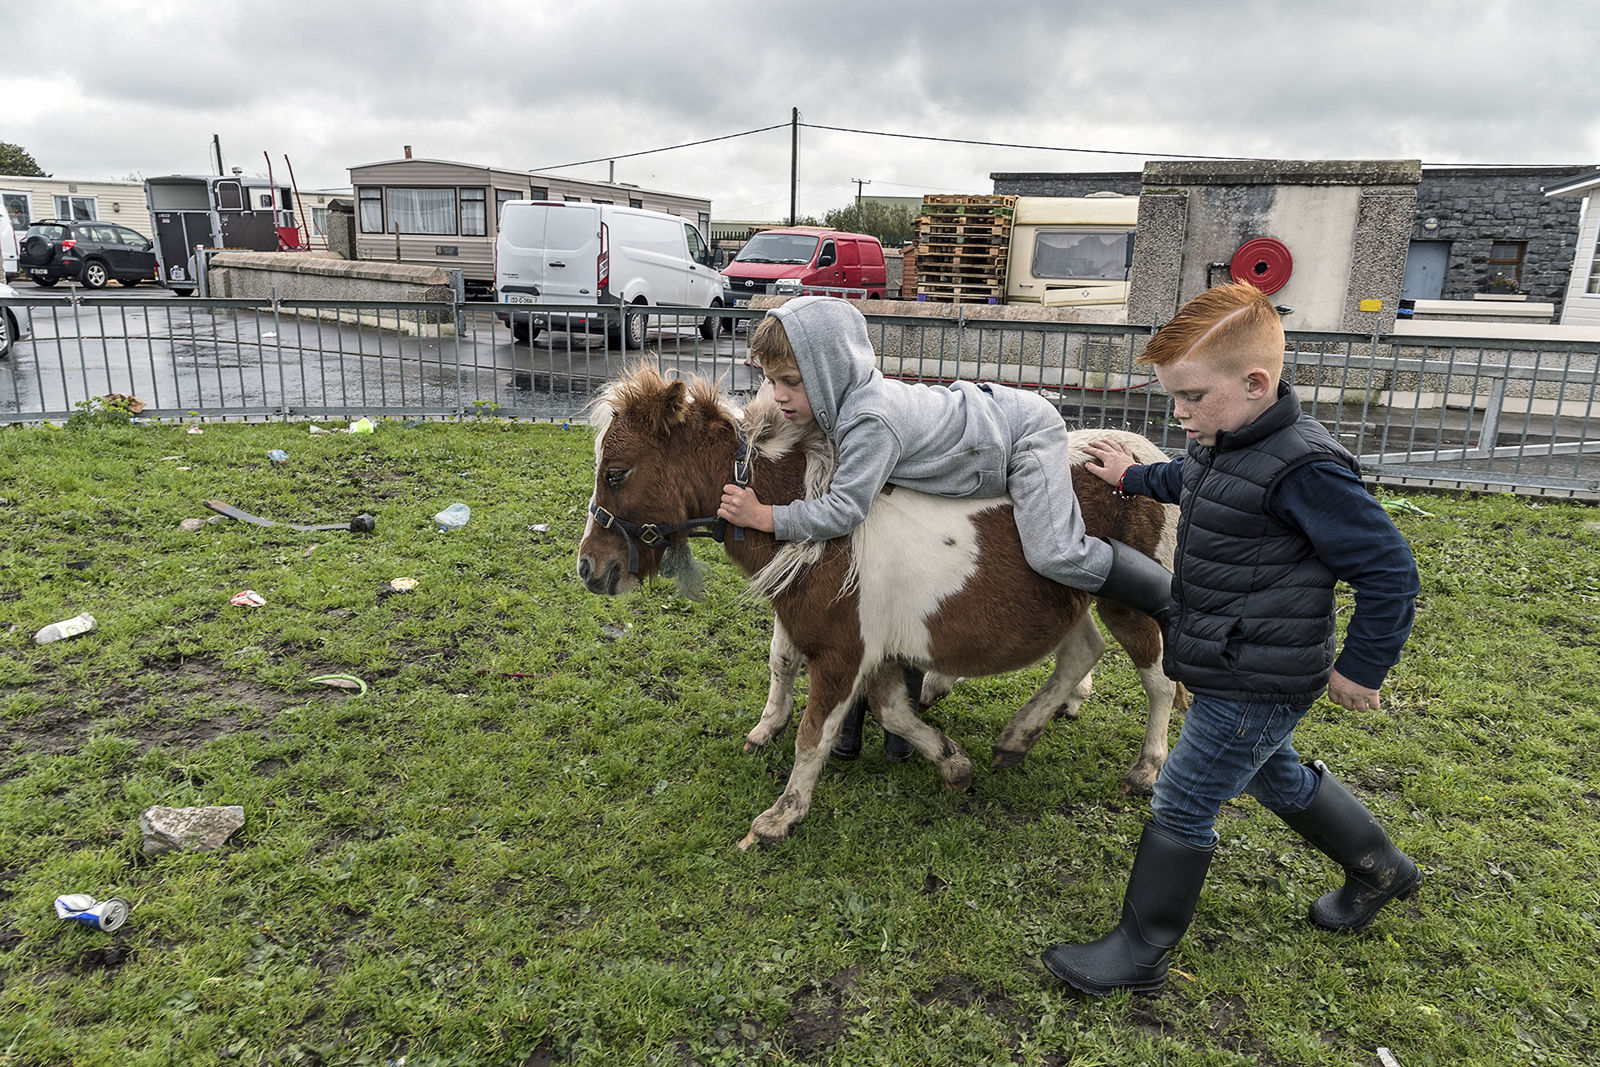 Two Boys and Pony, Galway, Ireland 2019